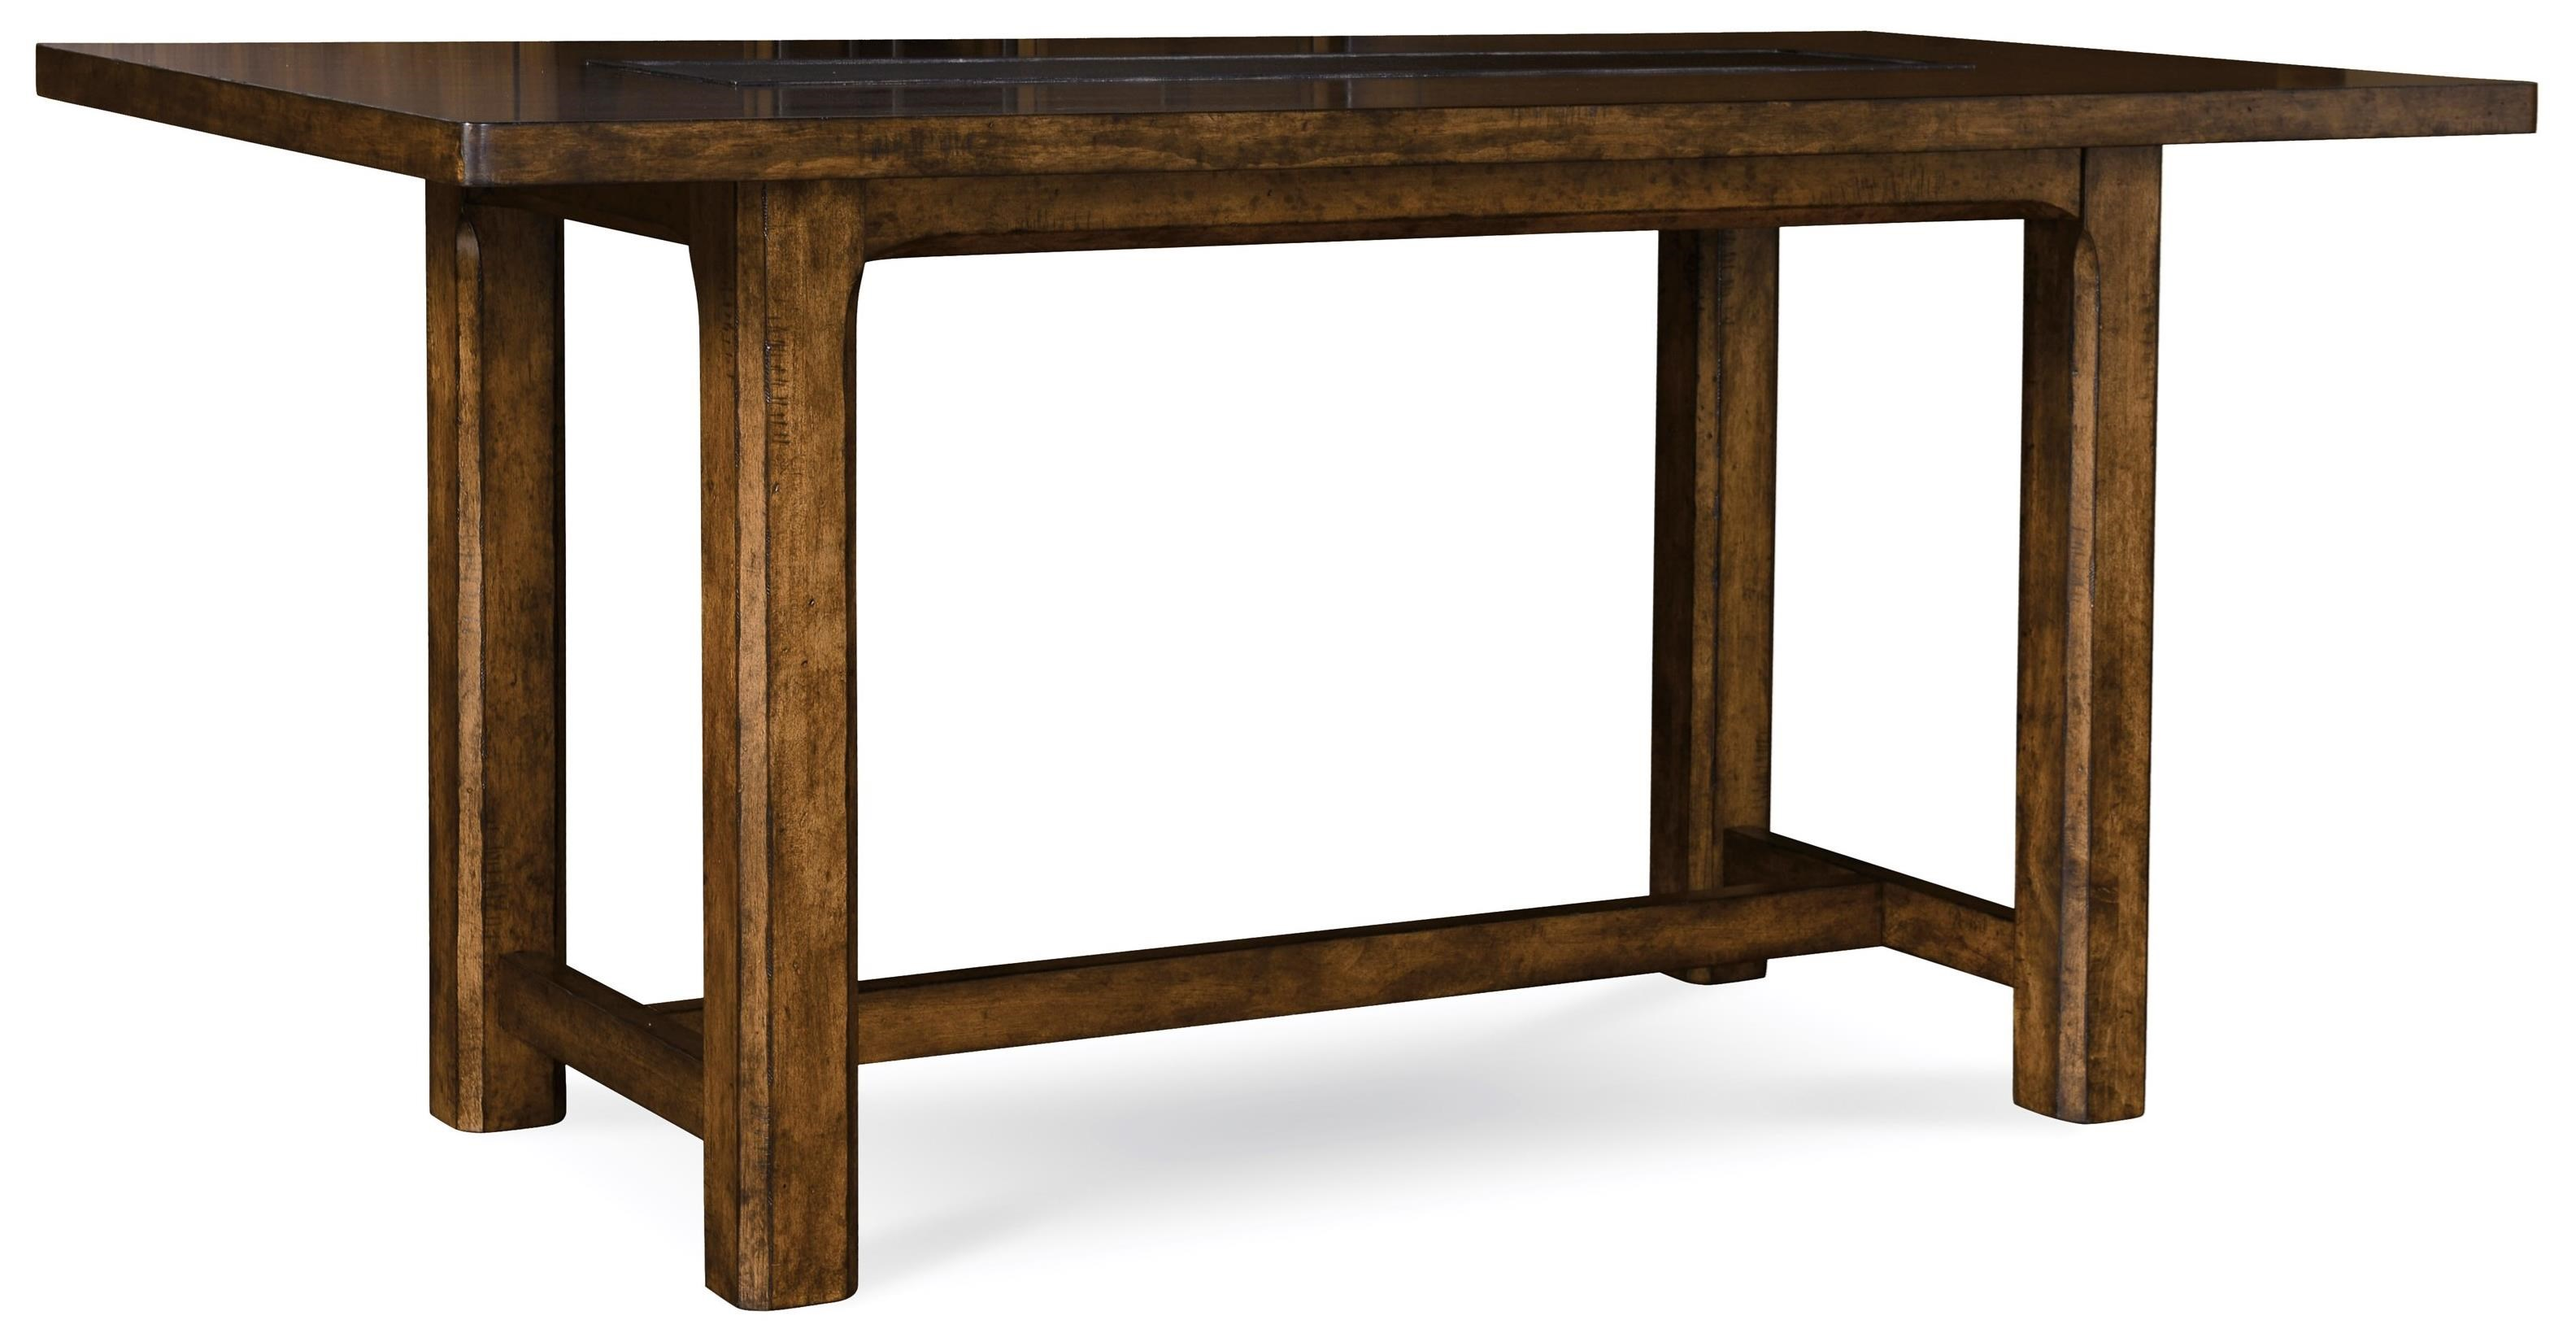 A r t furniture inc echo park 212226 2016 counter height for A r t dining room furniture